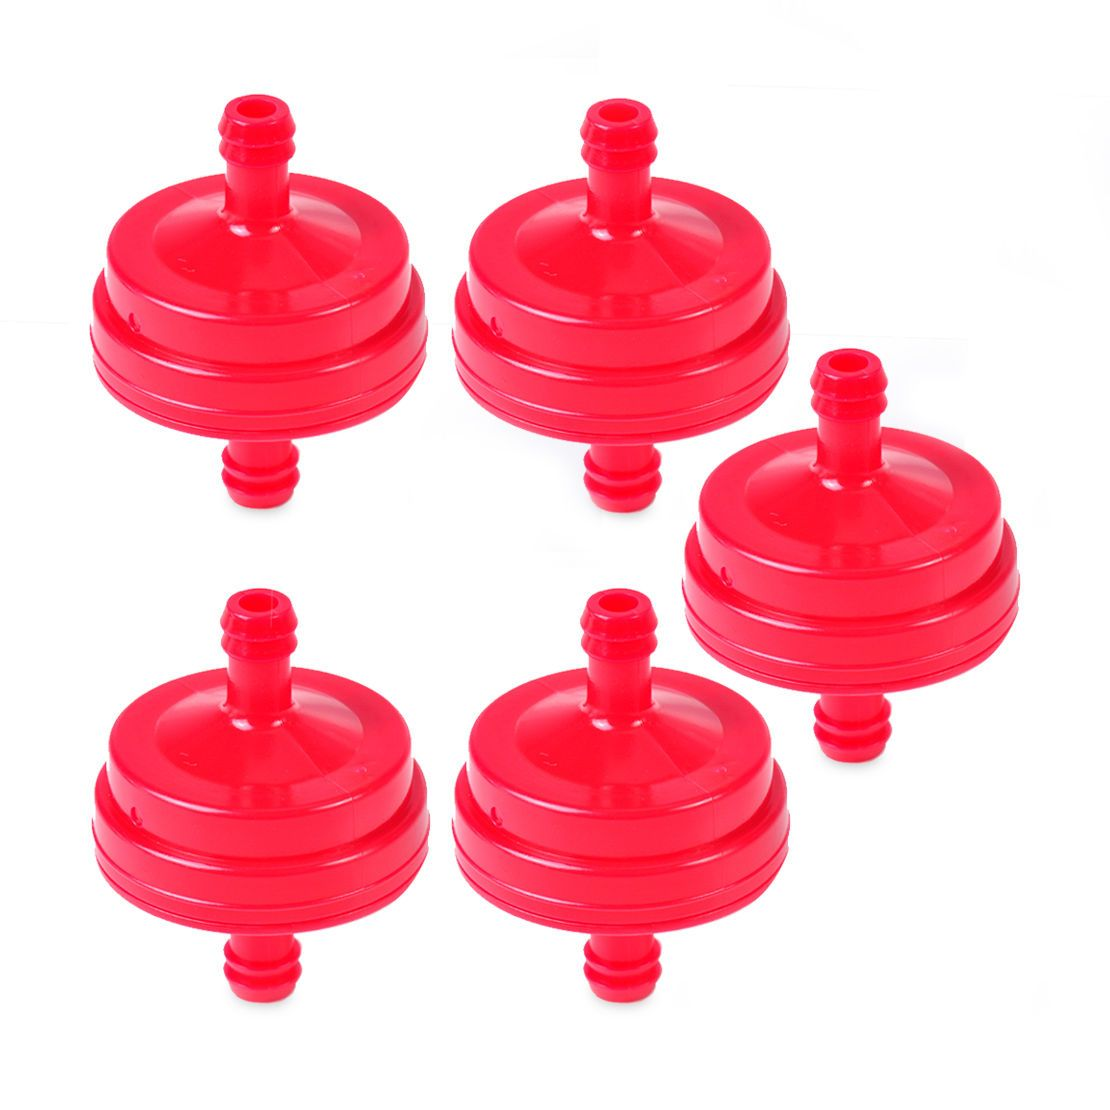 medium resolution of  2 5 5x 1 4 red inline fuel filter replacement 298090 fit for briggs stratton ebay home garden